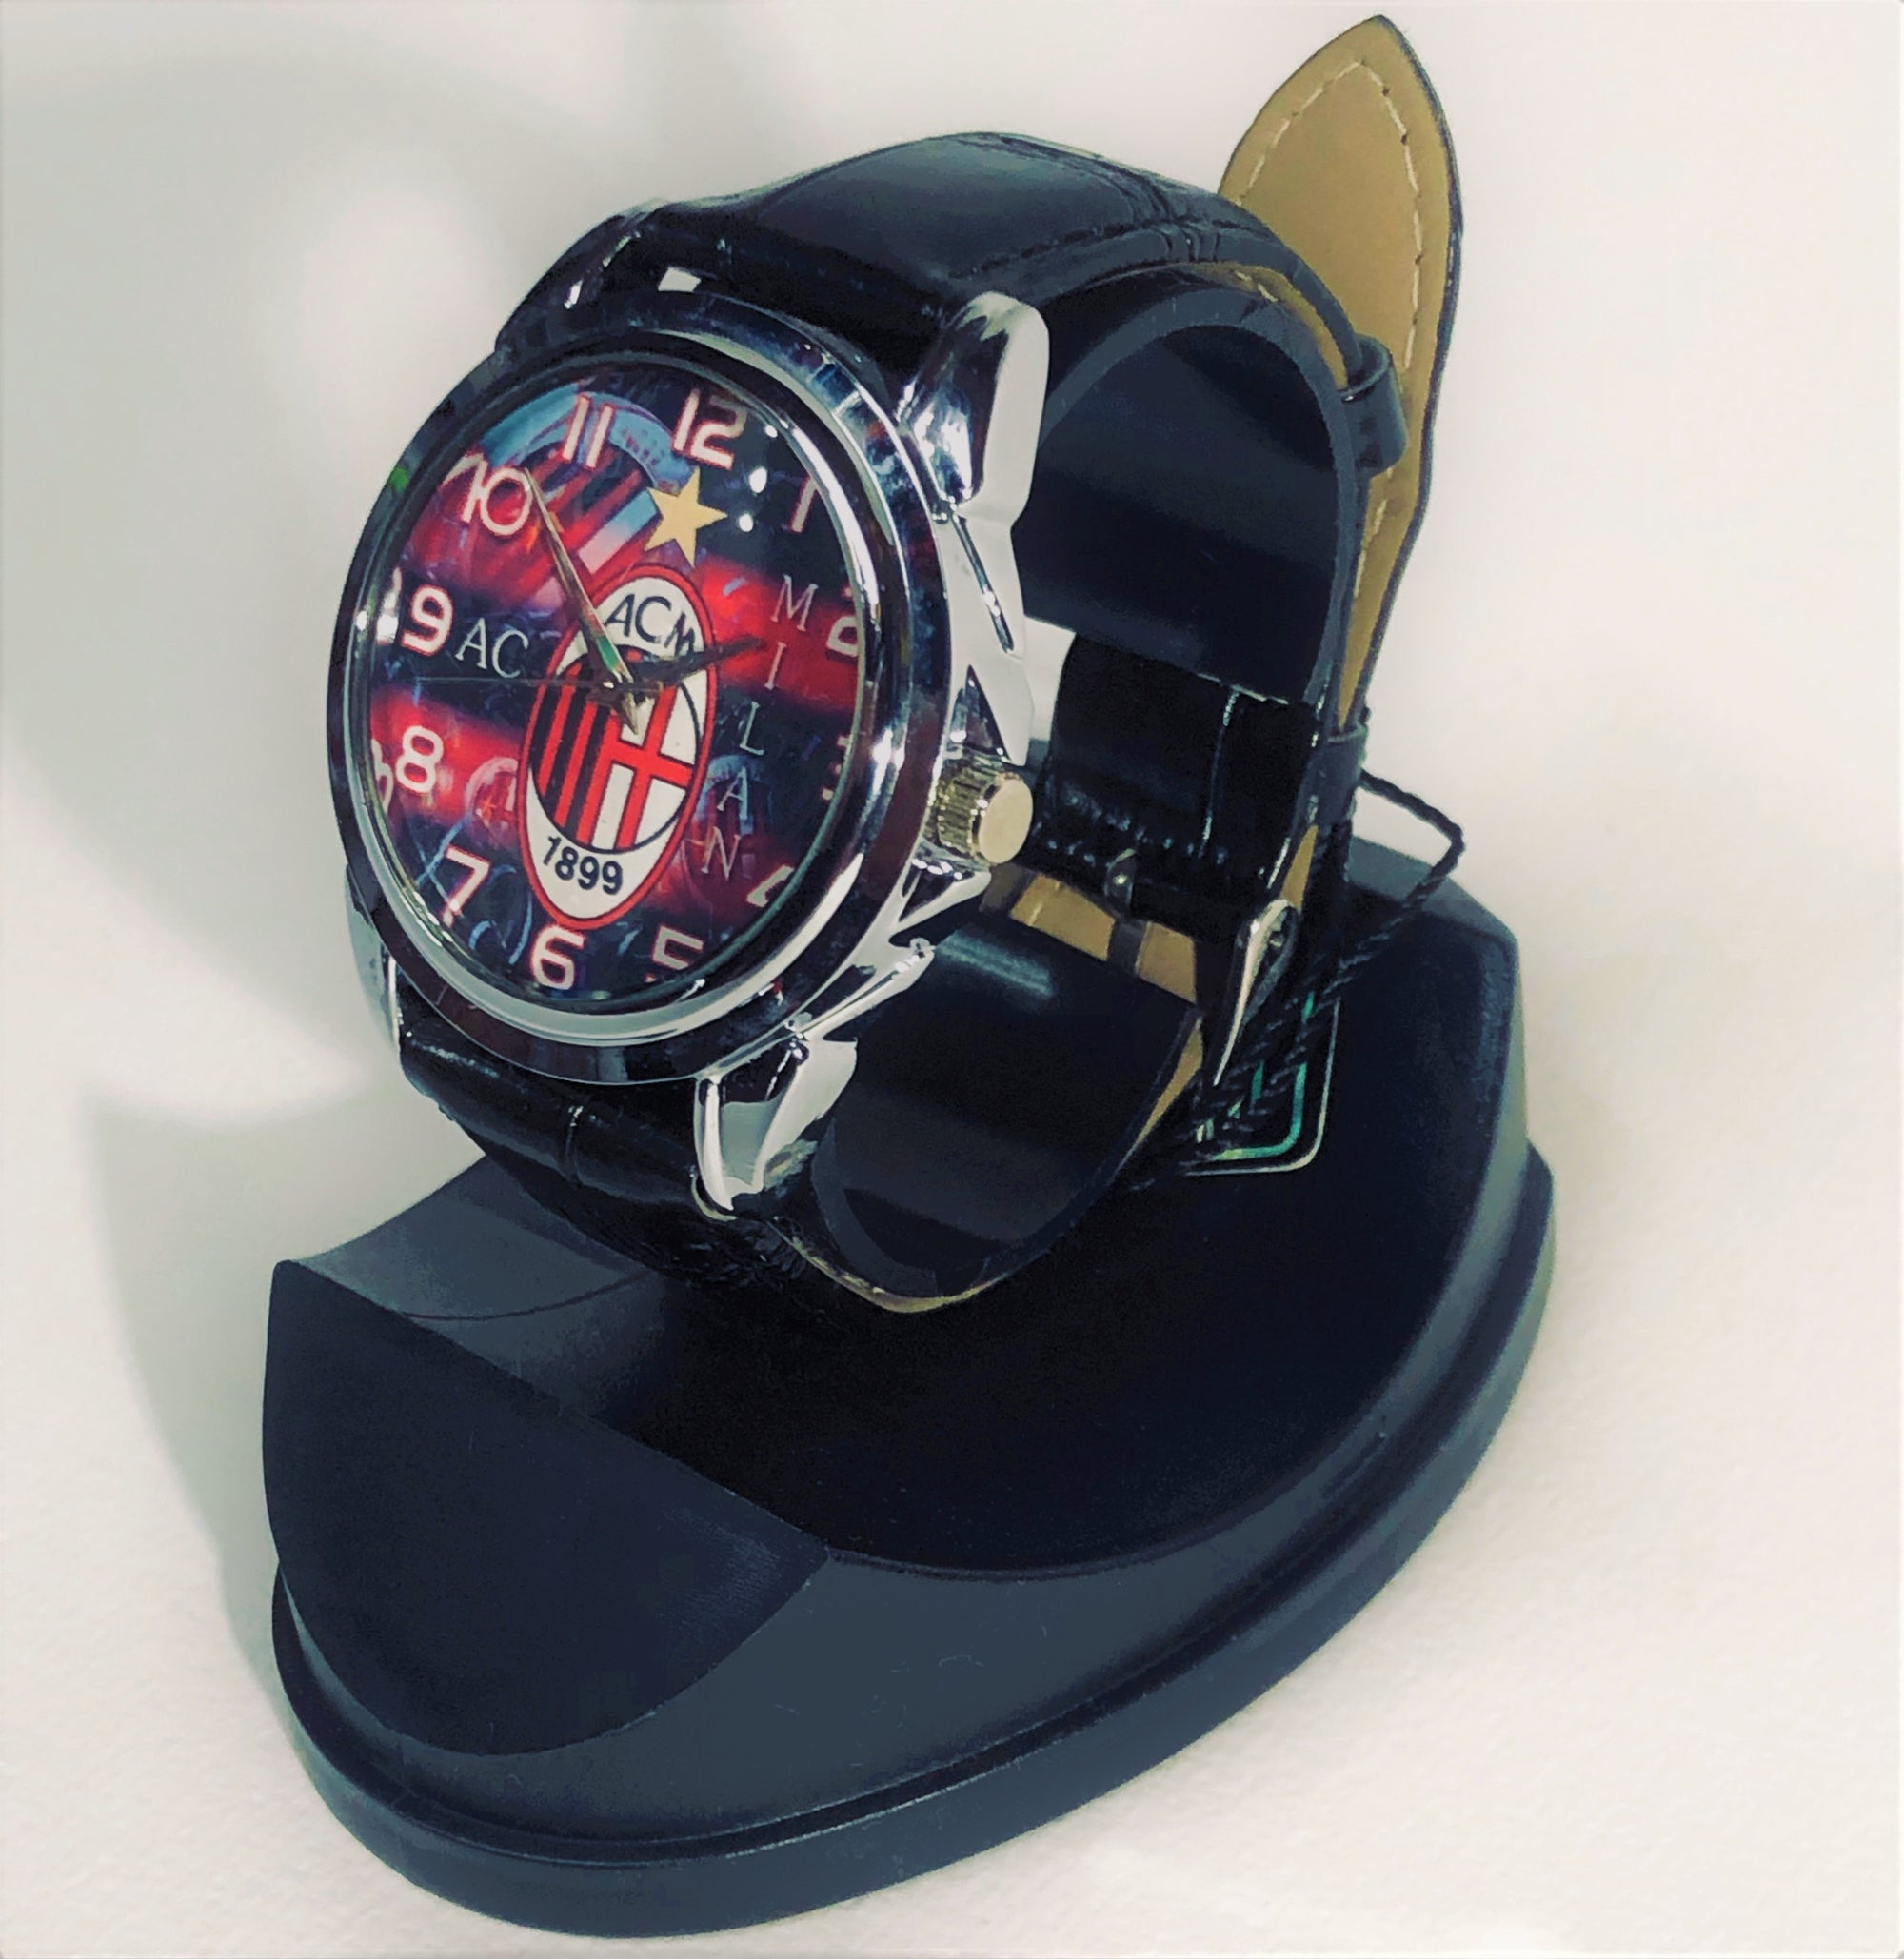 AC Milan Mens Wrist Watch